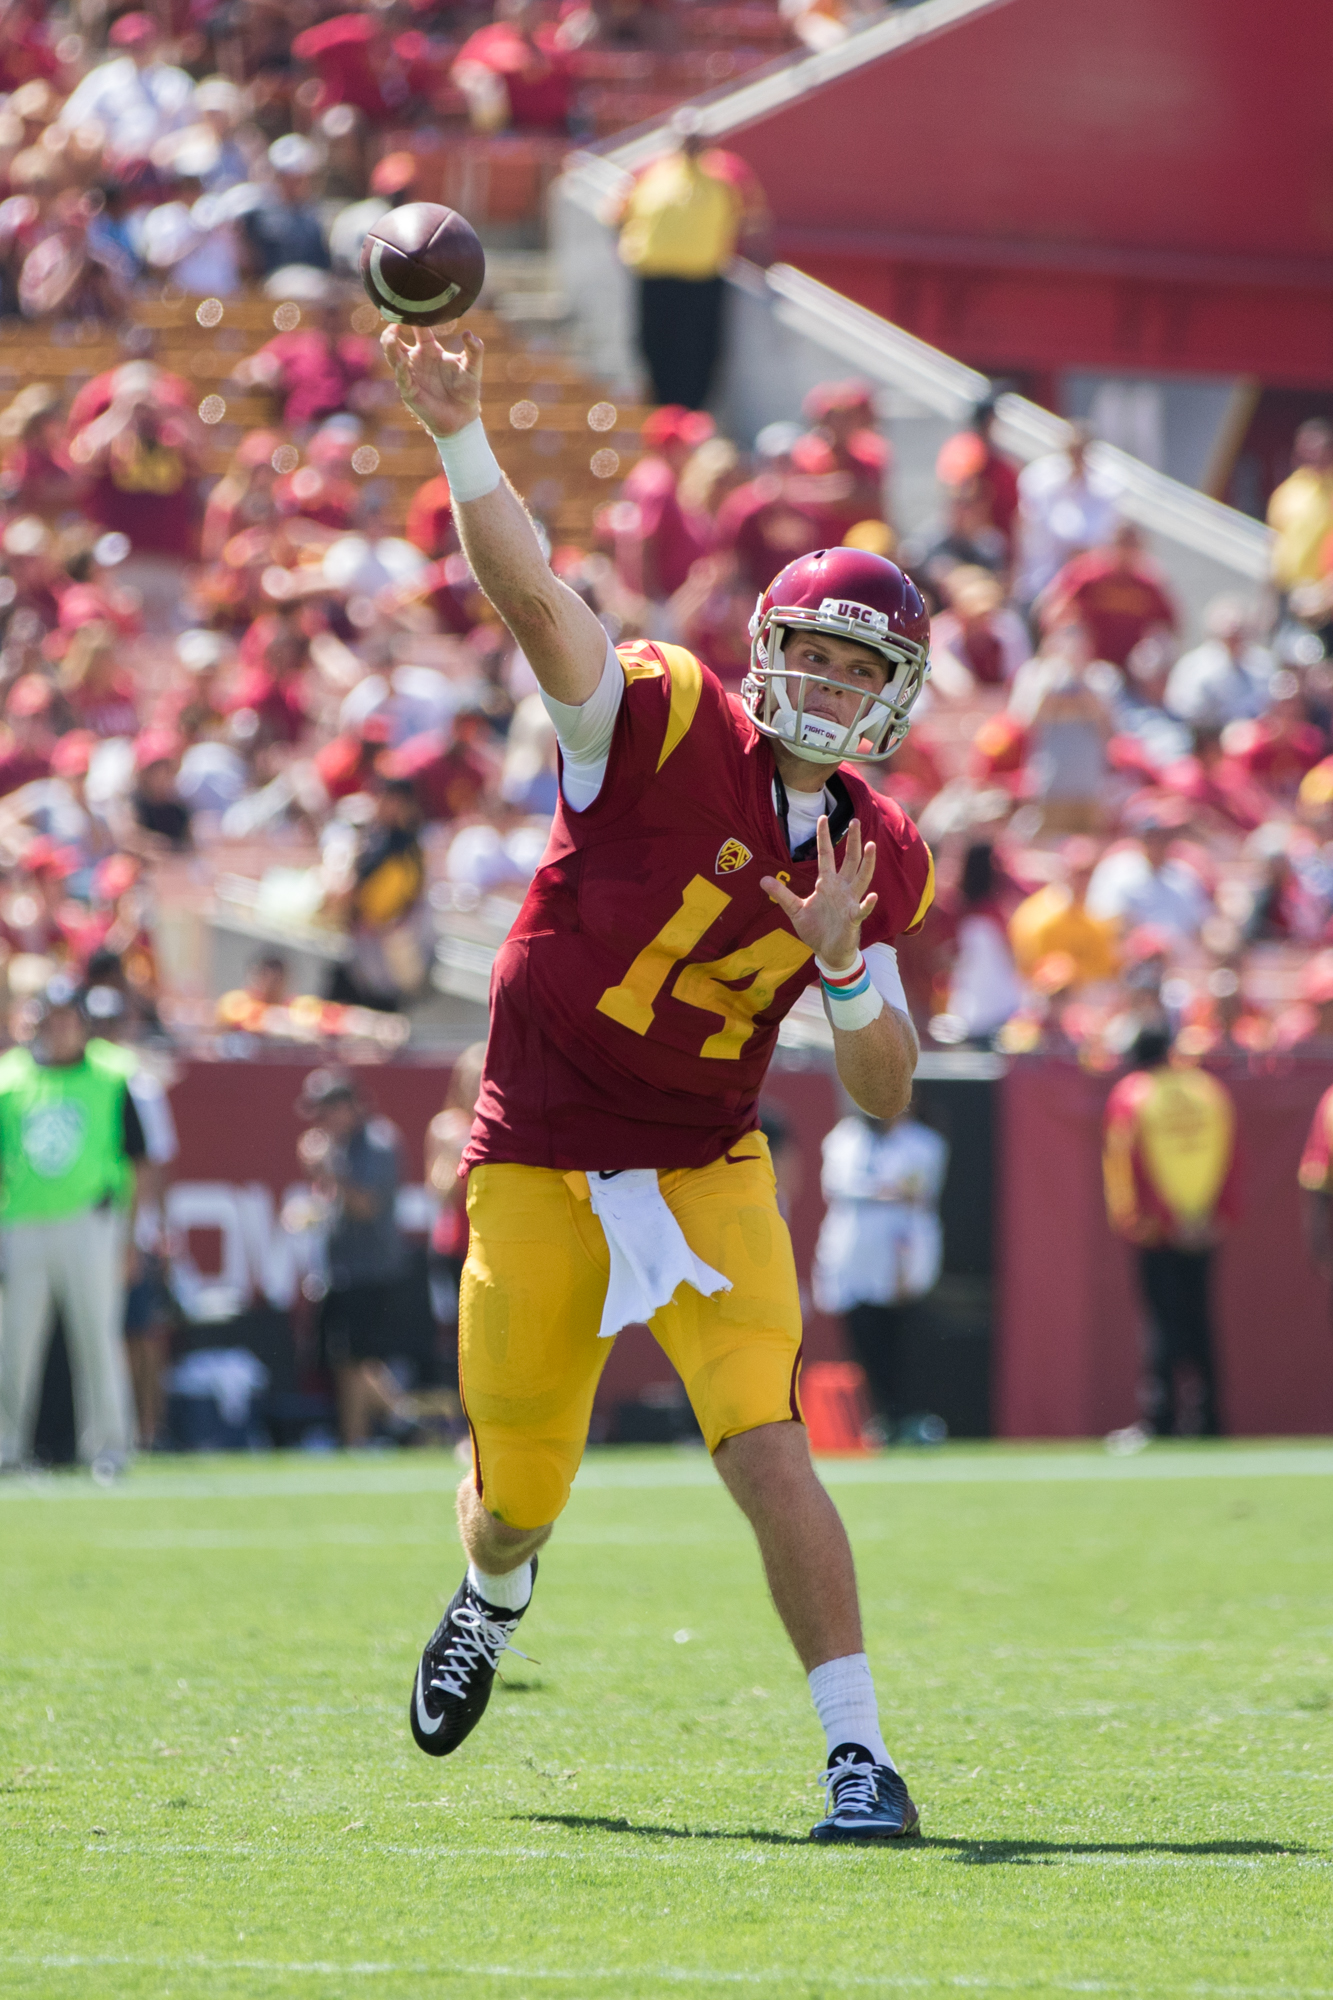 Nick Entin | Daily Trojan Redshirt freshman quarterback Sam Darnold received his fair share of playing time. Here, he slings one of his seven pass attempts.